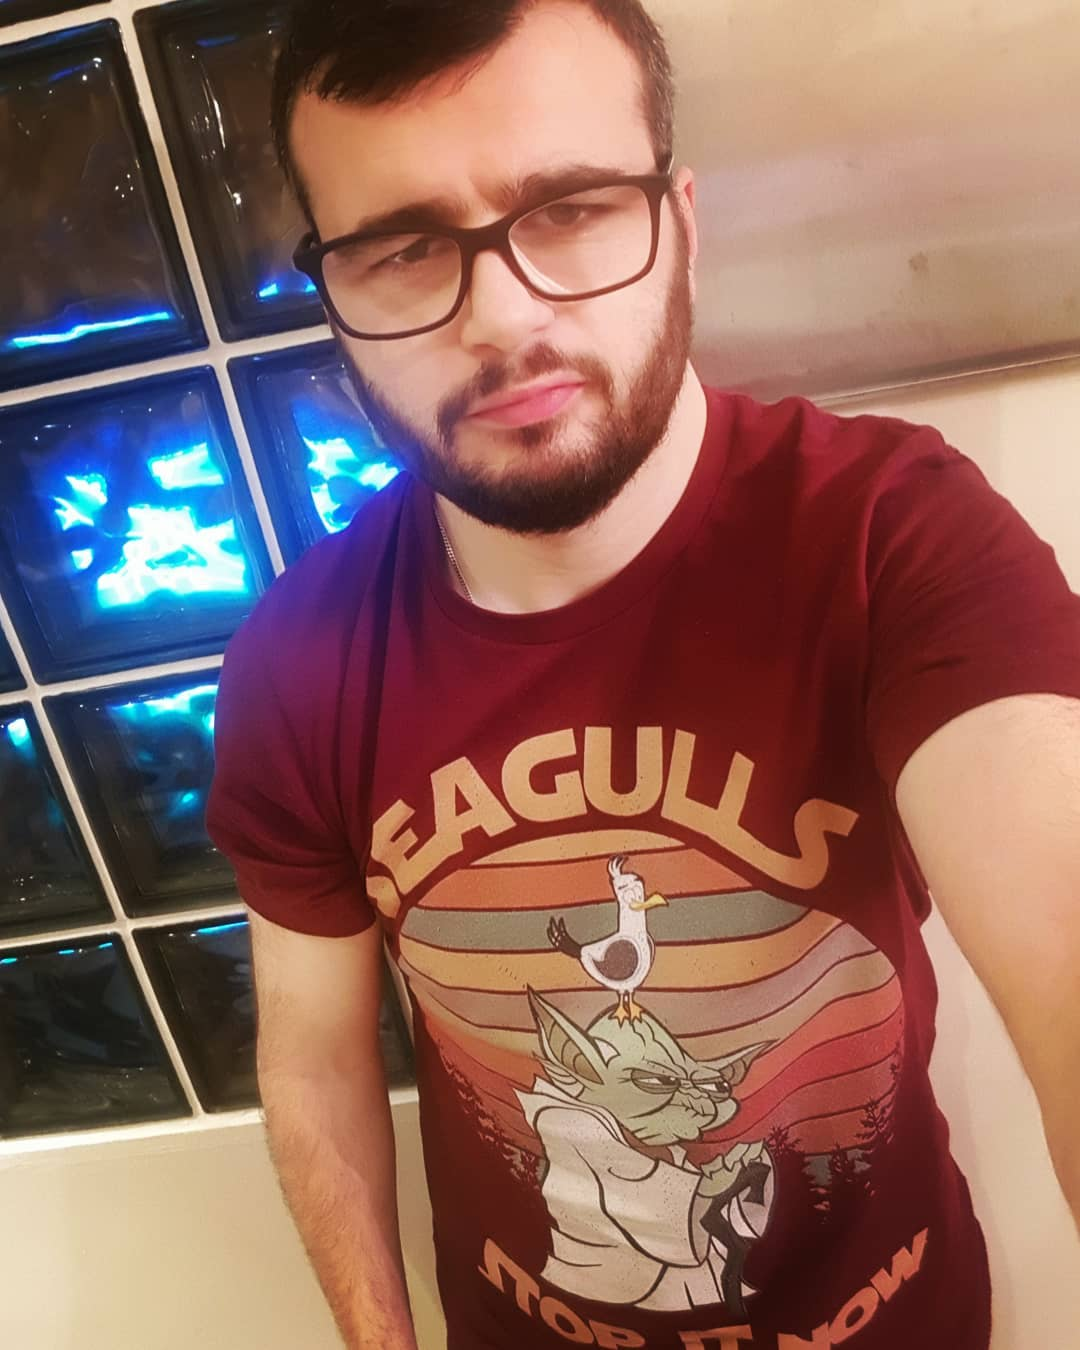 Seagulls Stop It Now Funny Yoda Star Wars Vintage Shirts photo review